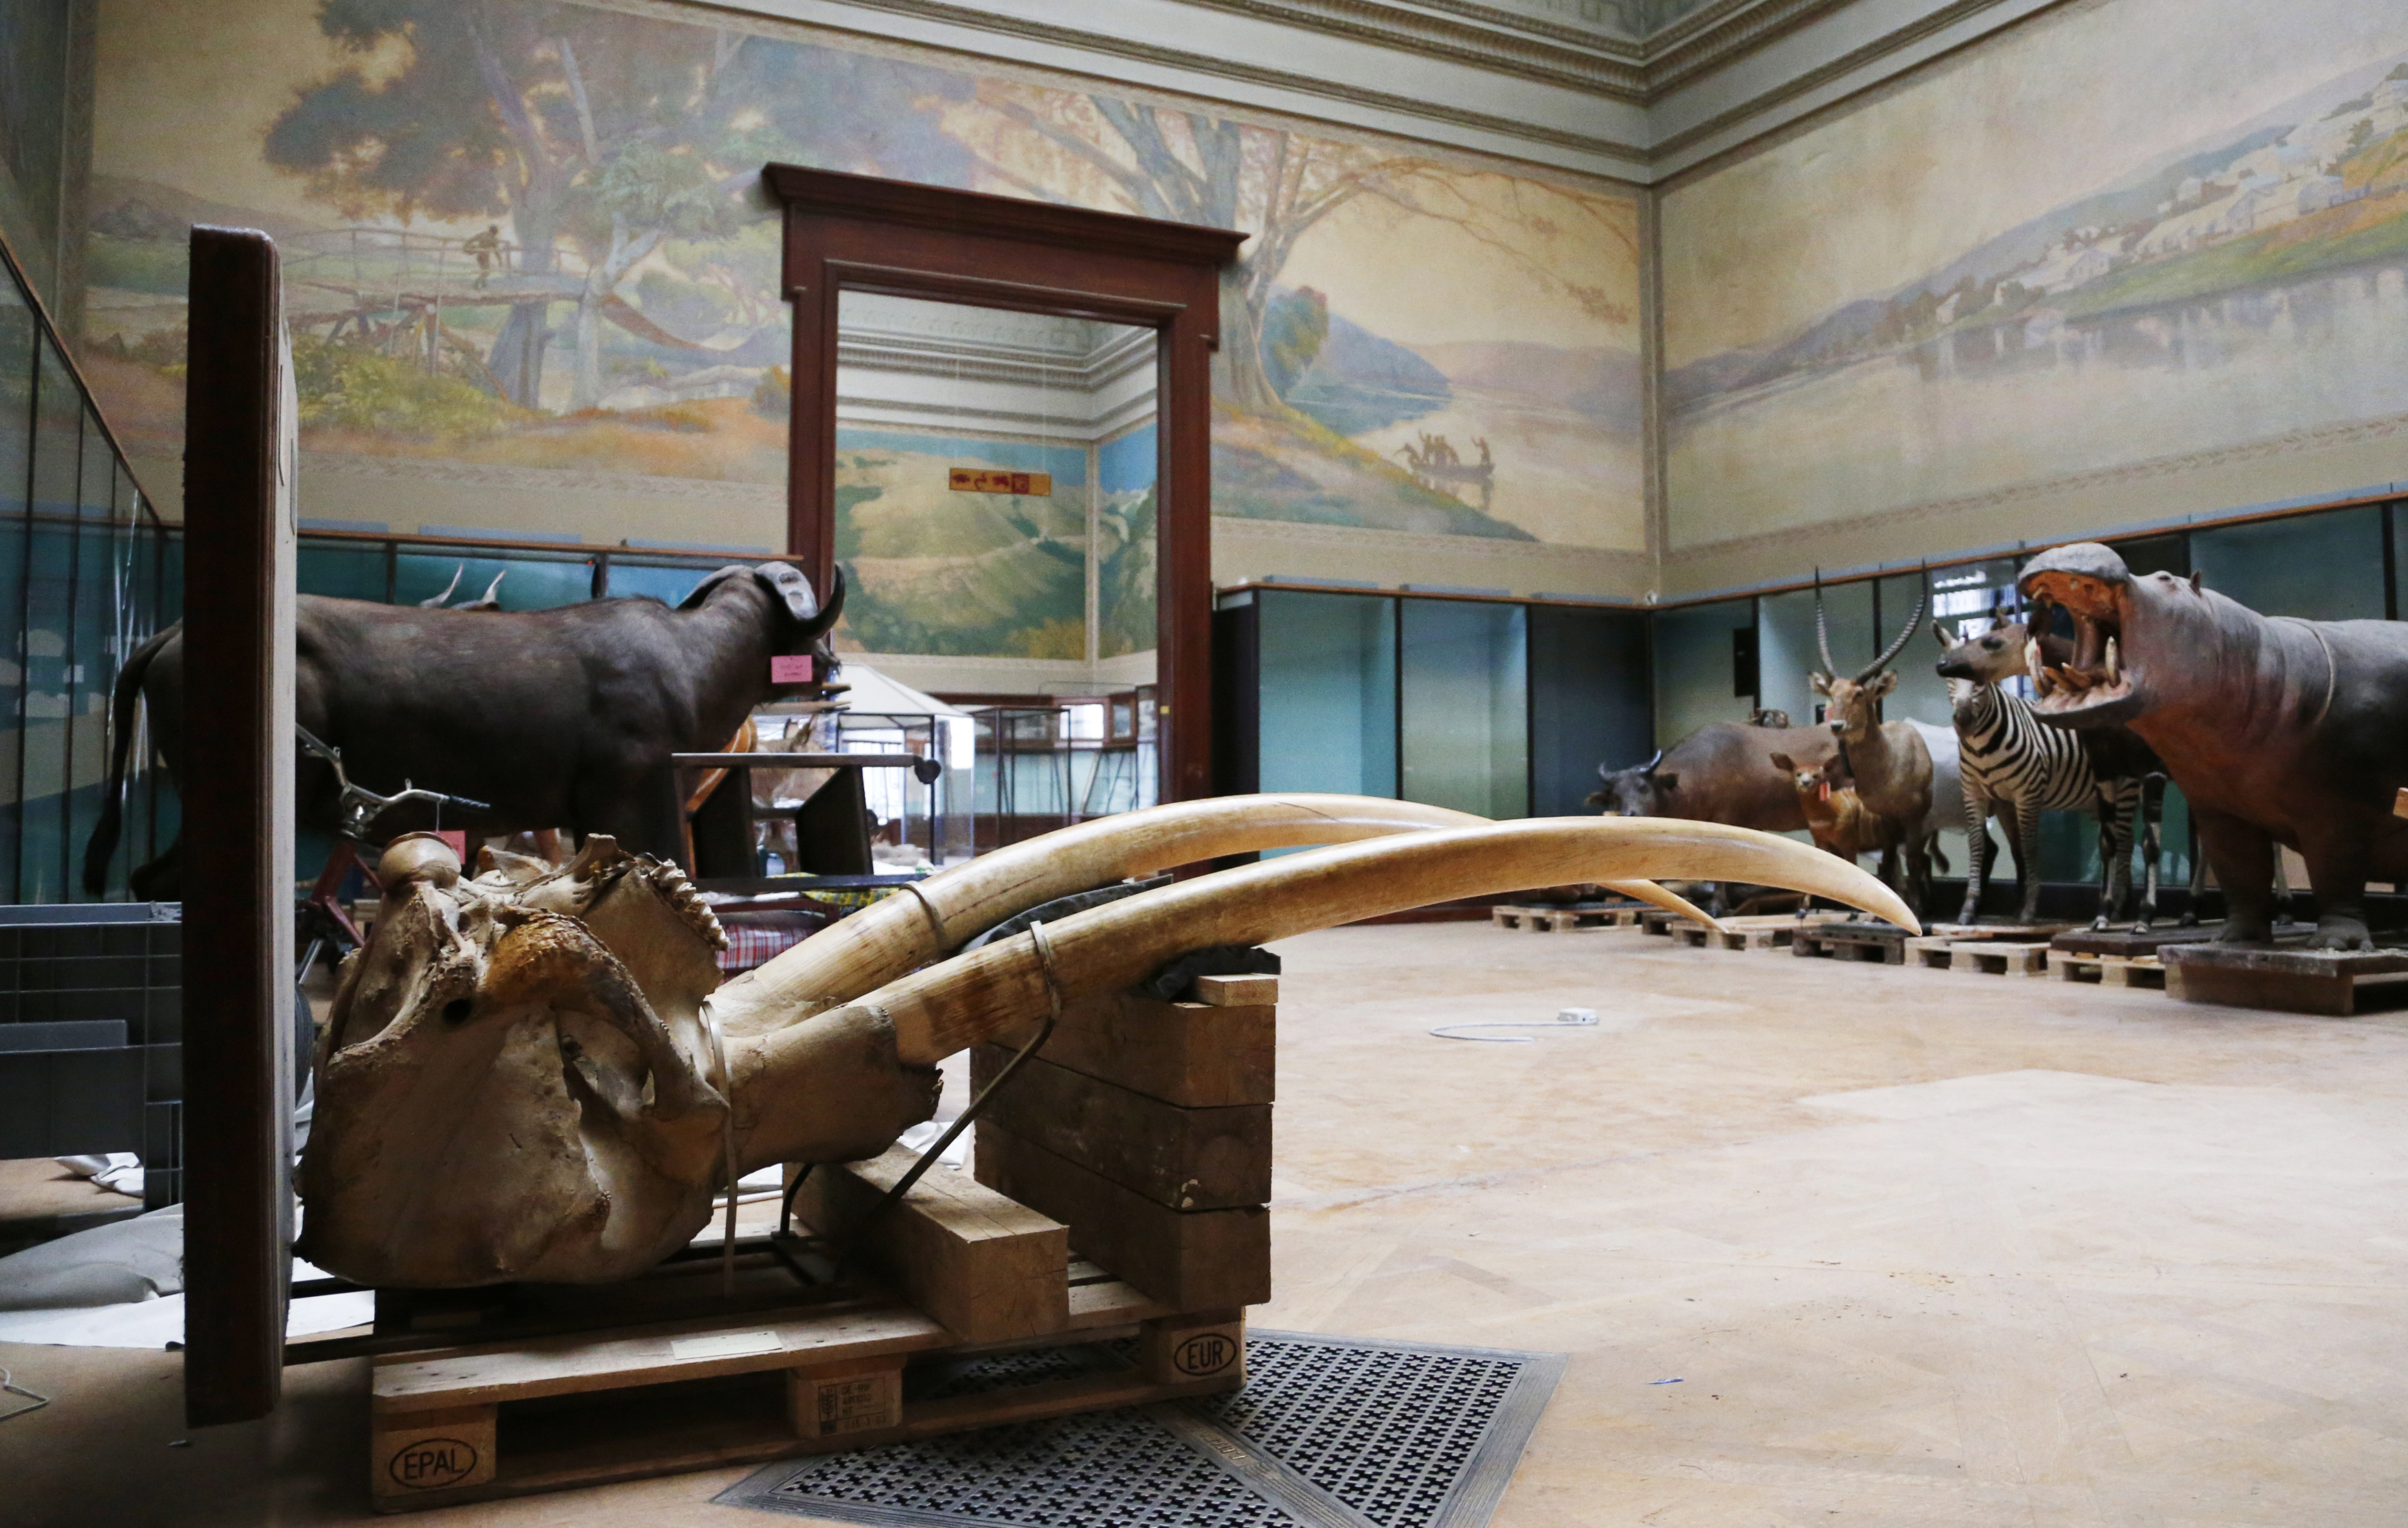 FILE -- Elephant tusks are seen near stuffed animals at the Royal Museum for Central Africa in Tervuren, near Brussels Jan. 22, 2014. After a five-year renovation, the museum reopened, Dec. 8, 2018.